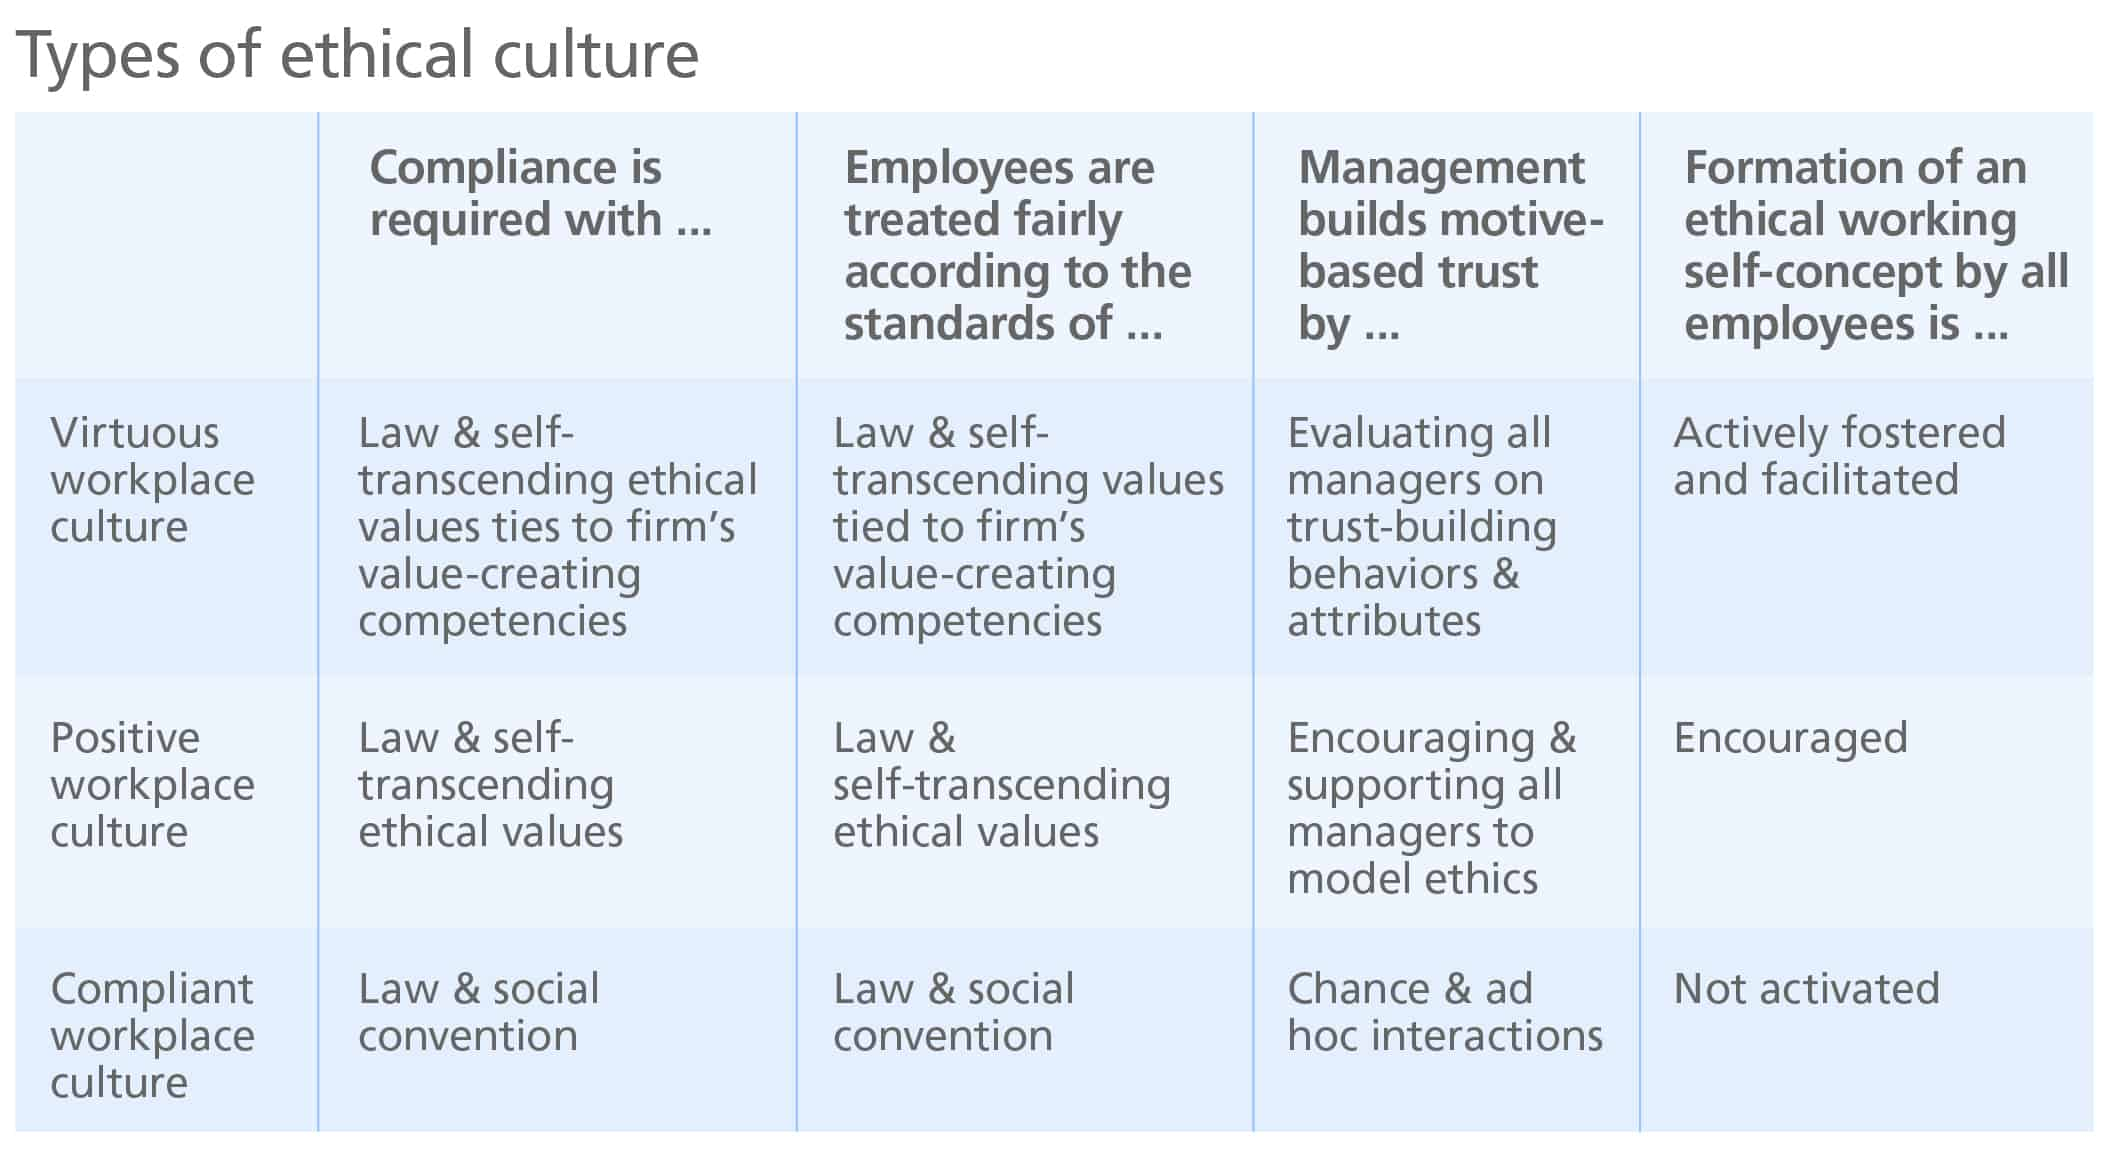 Types of ethical cultures